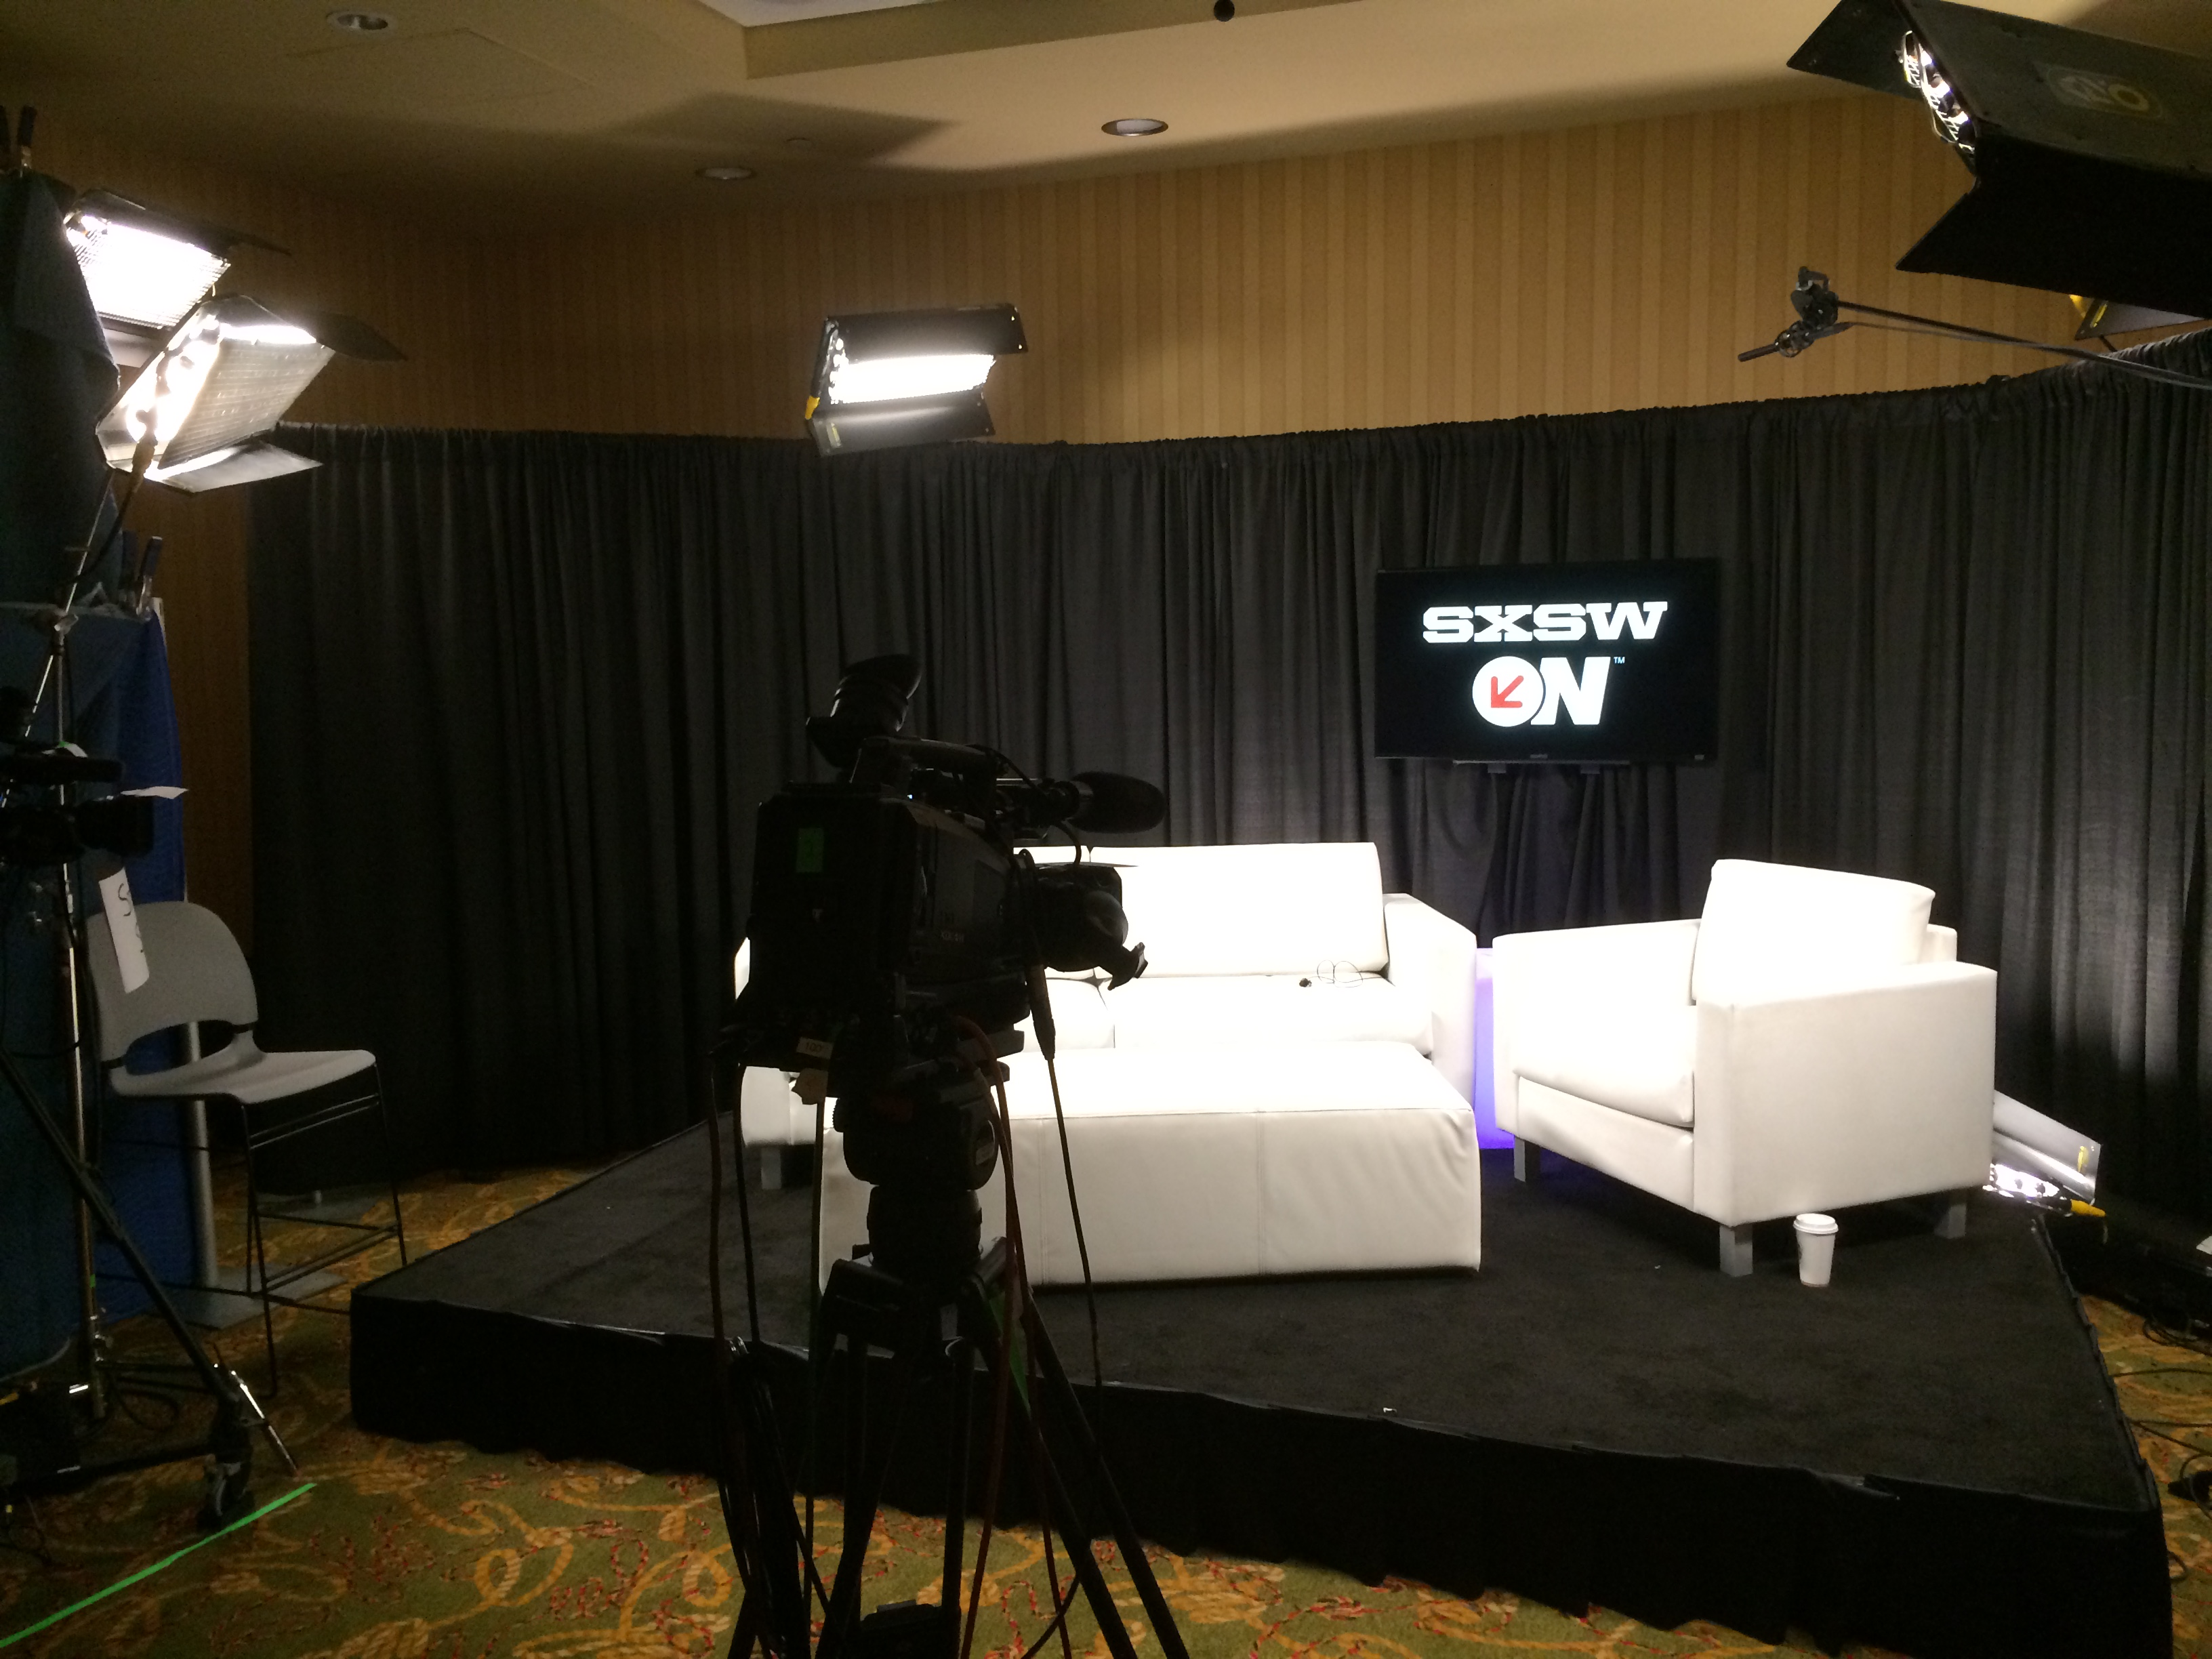 A look at the studio setup for the SXSW ON show.